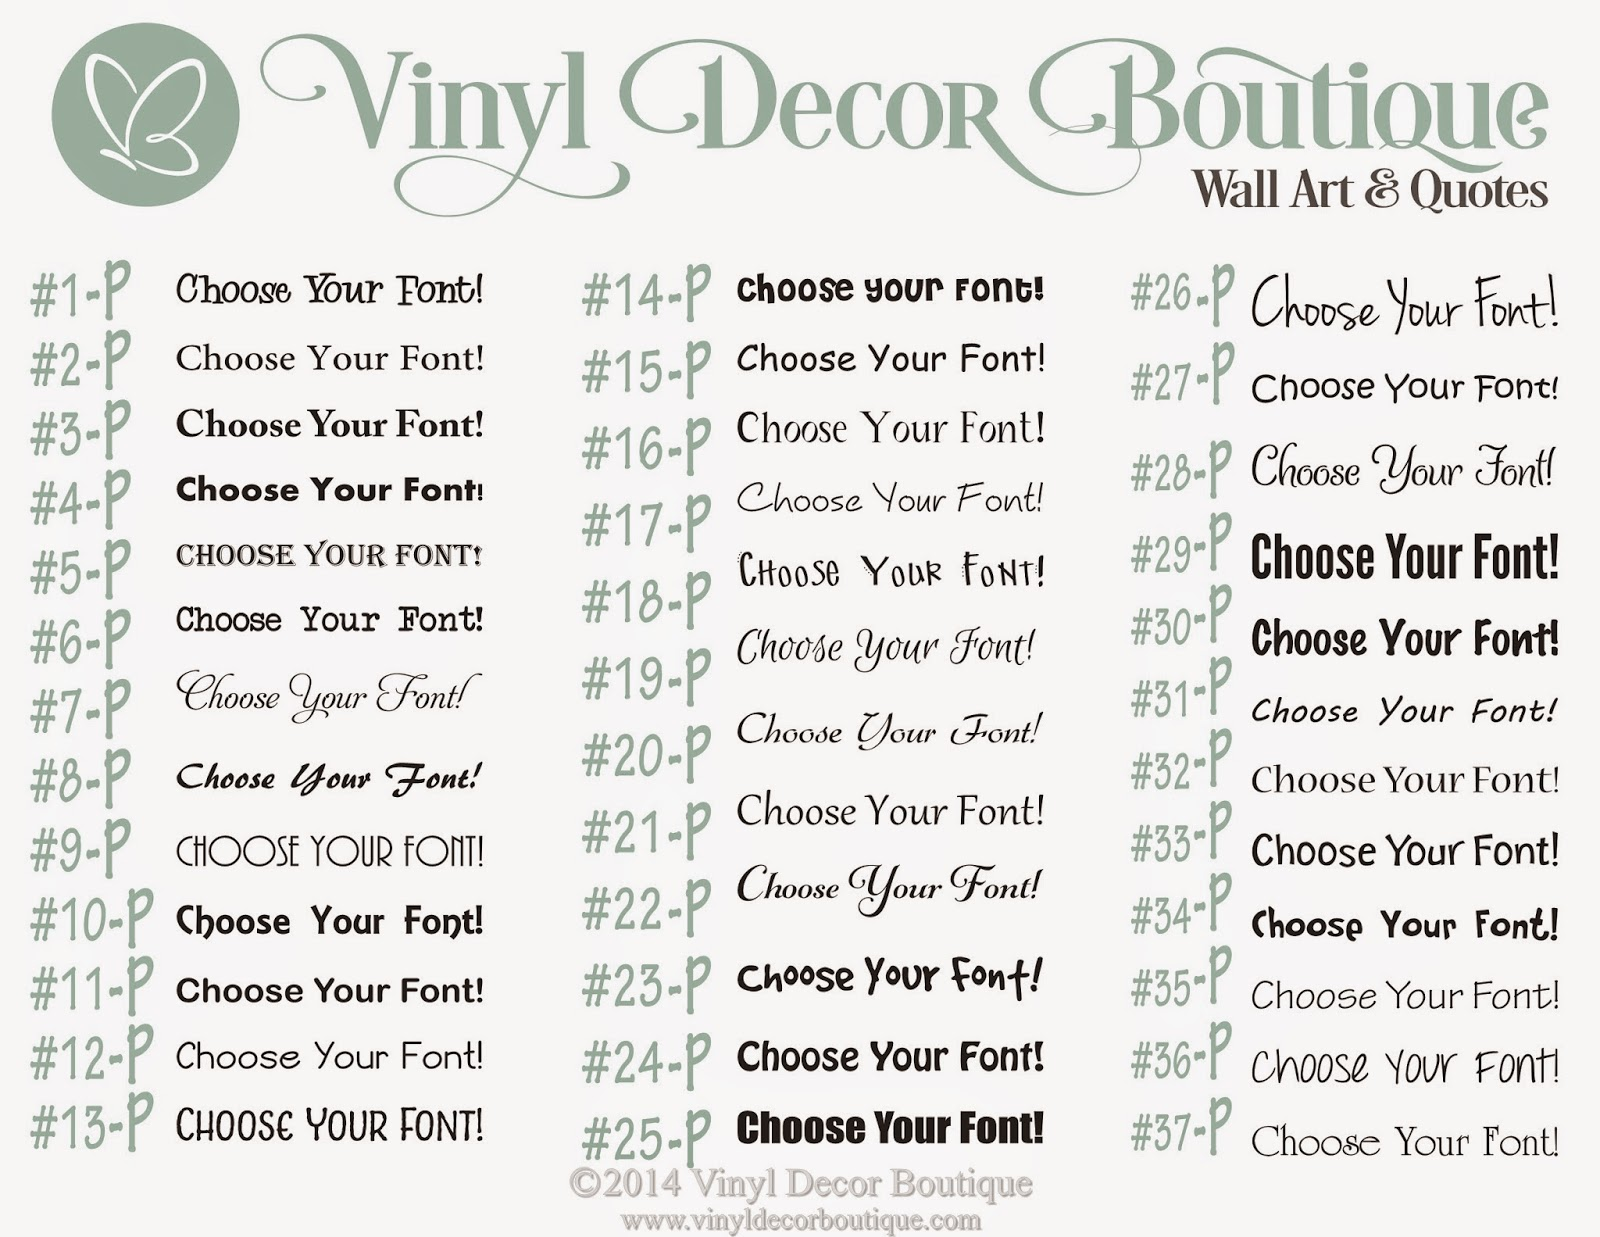 Vinyl Decor Boutique Jingle Bells Jingle Bells - Custom vinyl decal application instructions pdfvinyl decor boutique simple things you should know and do before